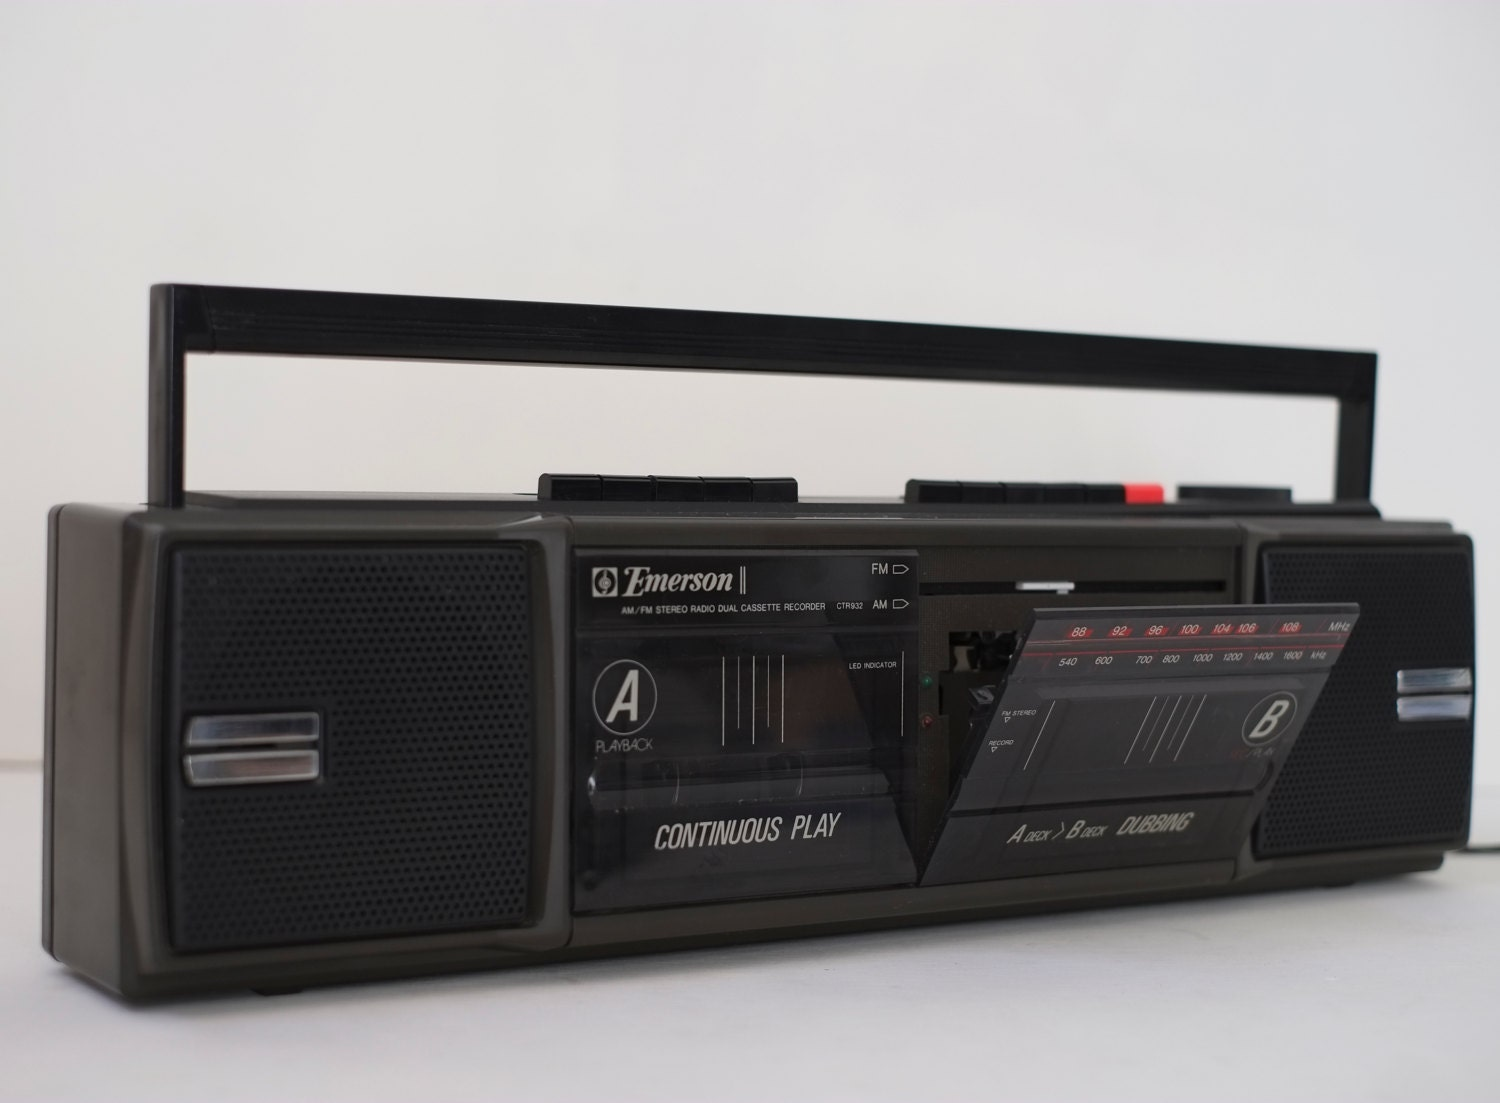 gl vase with handle with 1980s Emerson Dual Cassette Deck Am Fm on 1980s Emerson Dual Cassette Deck Am Fm in addition 20180129073527 lyspaerer Pa  t besides C3c2e22f8b6f32ee4d5f1ca15d057bda besides Vintage Pig Kitchen Timer Cooking Pink moreover Turtle Box Gourd Woodburned Trinket Box.